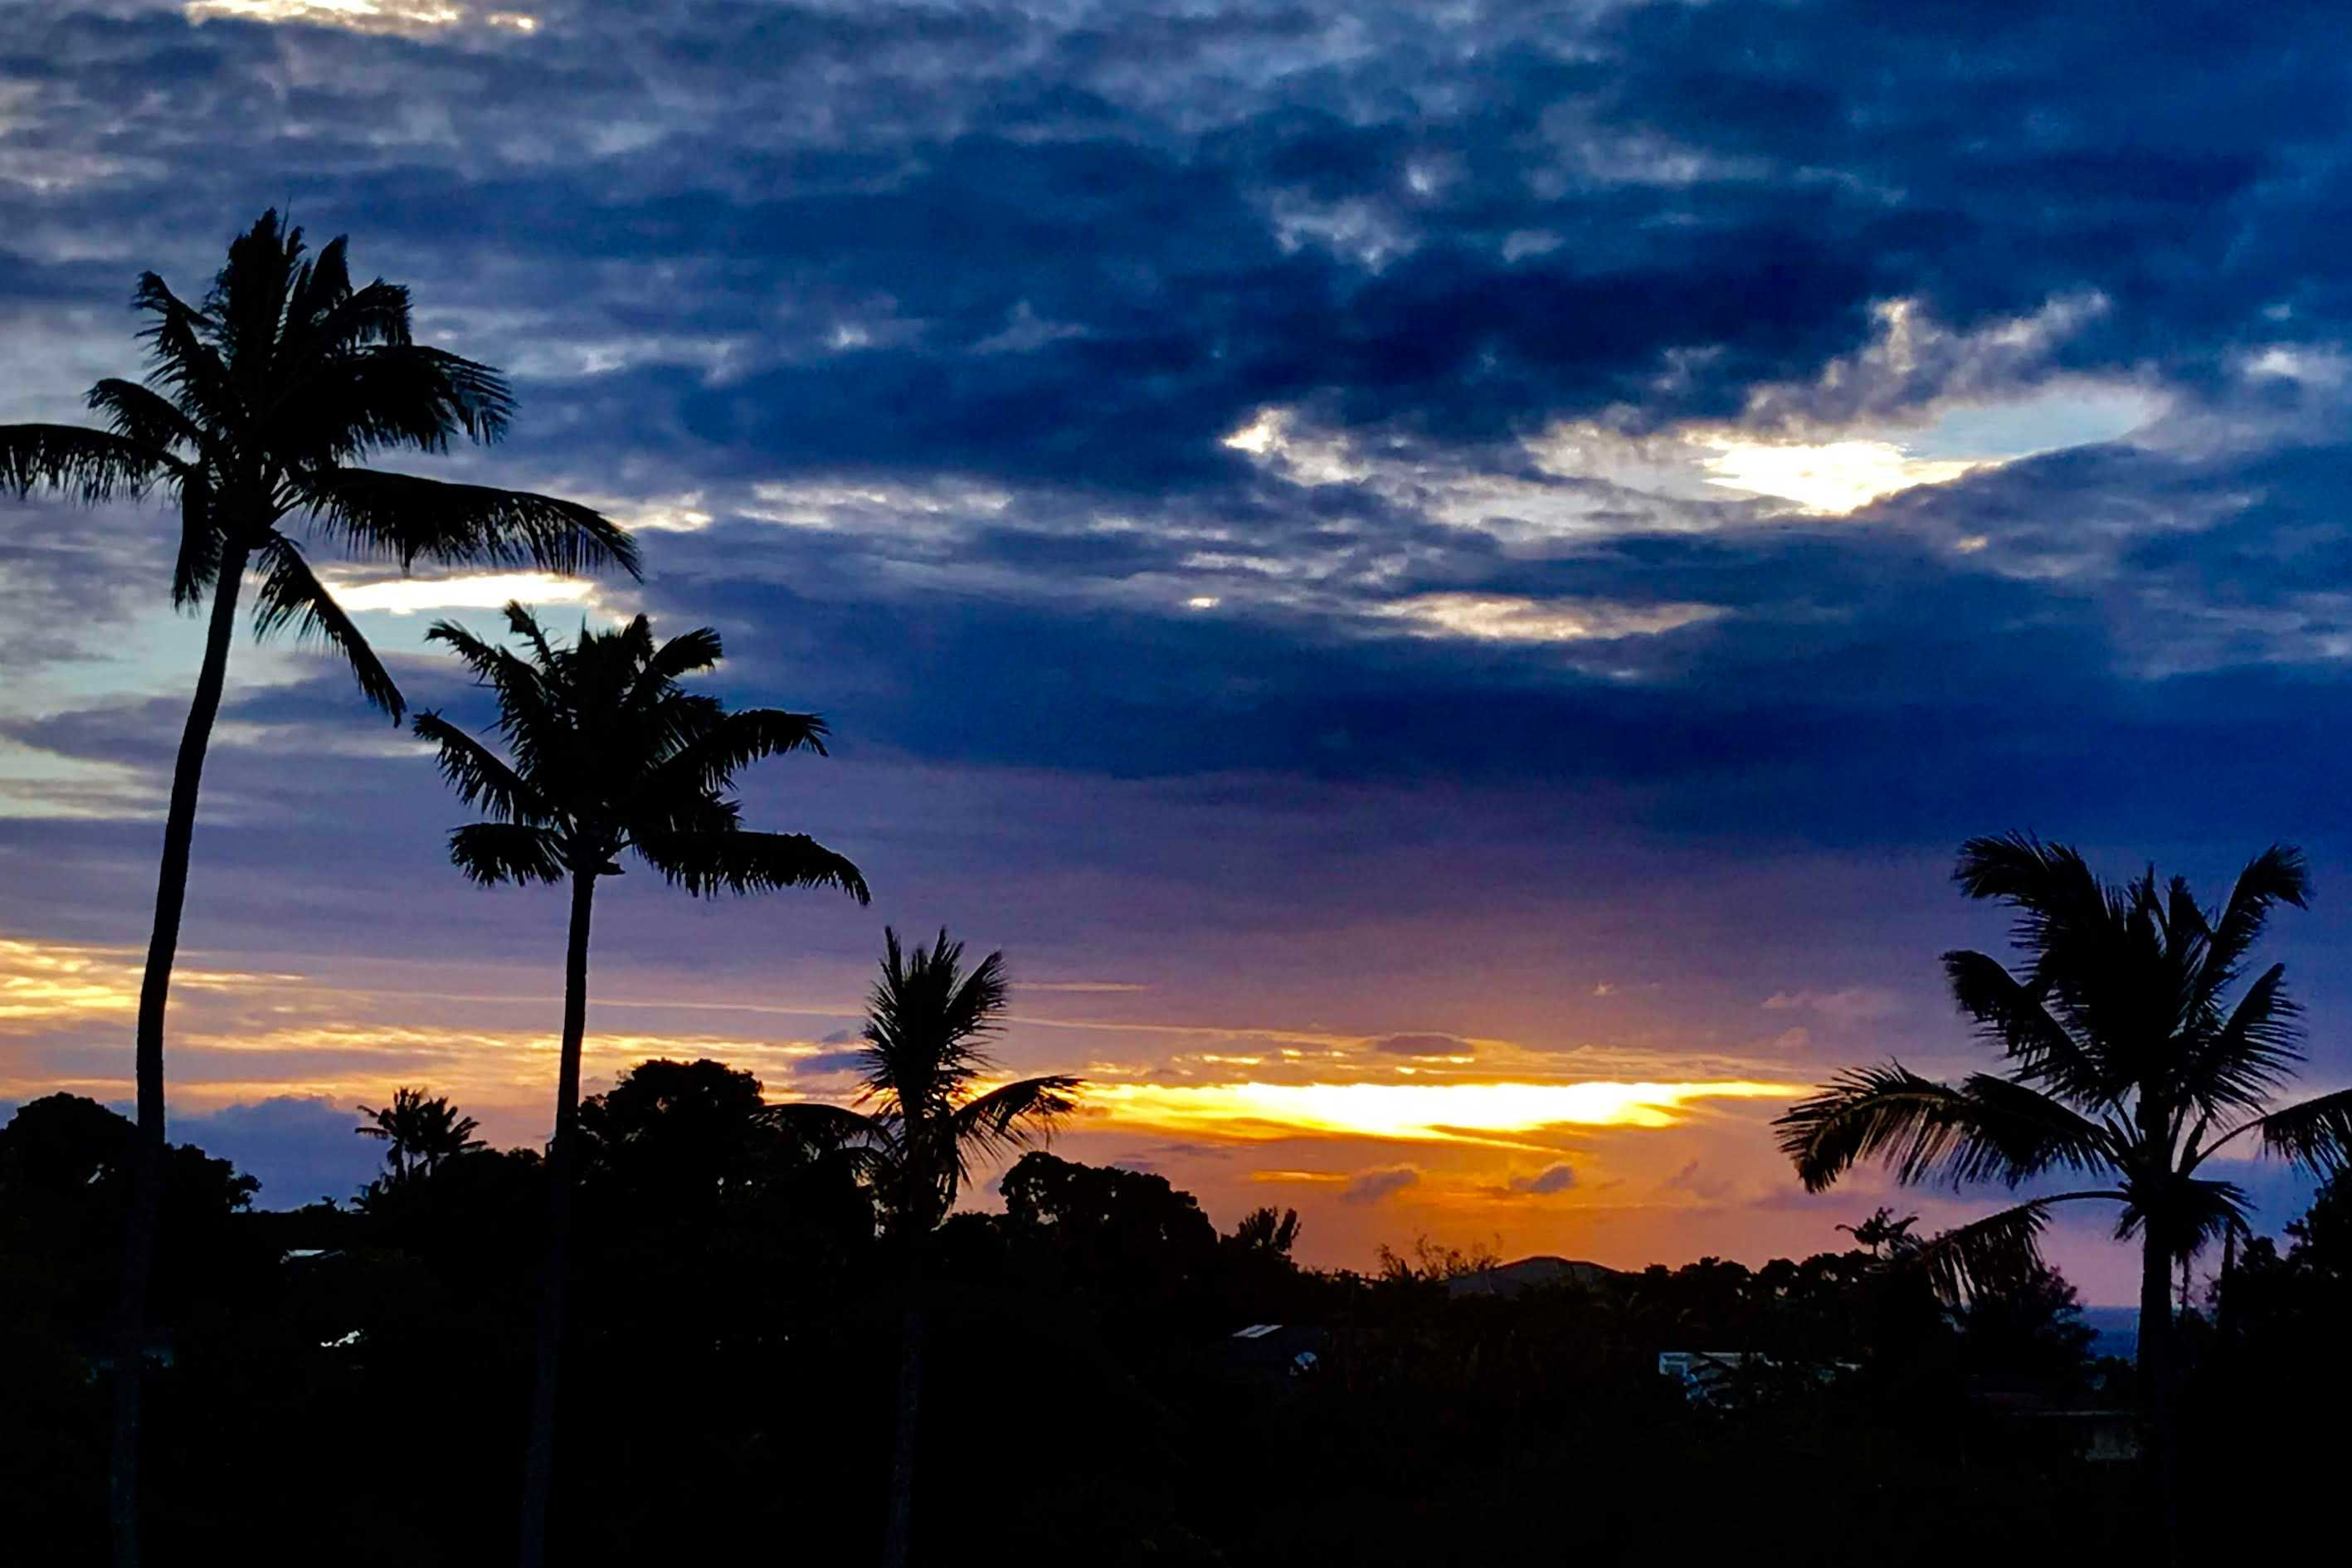 Each day in paradise ends with a a colorful sunset!